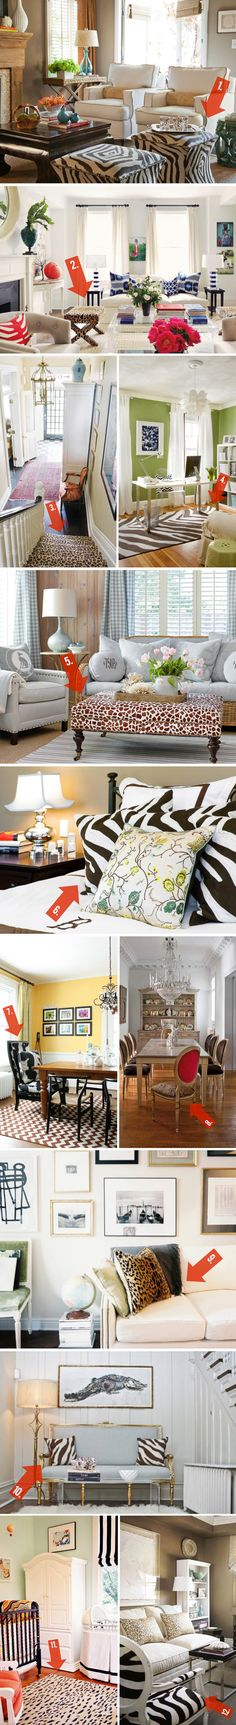 12 easy and stylish ways to incorporate animal print into your home. via @HomeGoods and @Michael Dussert Dussert Wurm, Jr. {inspiredbycharm.com}